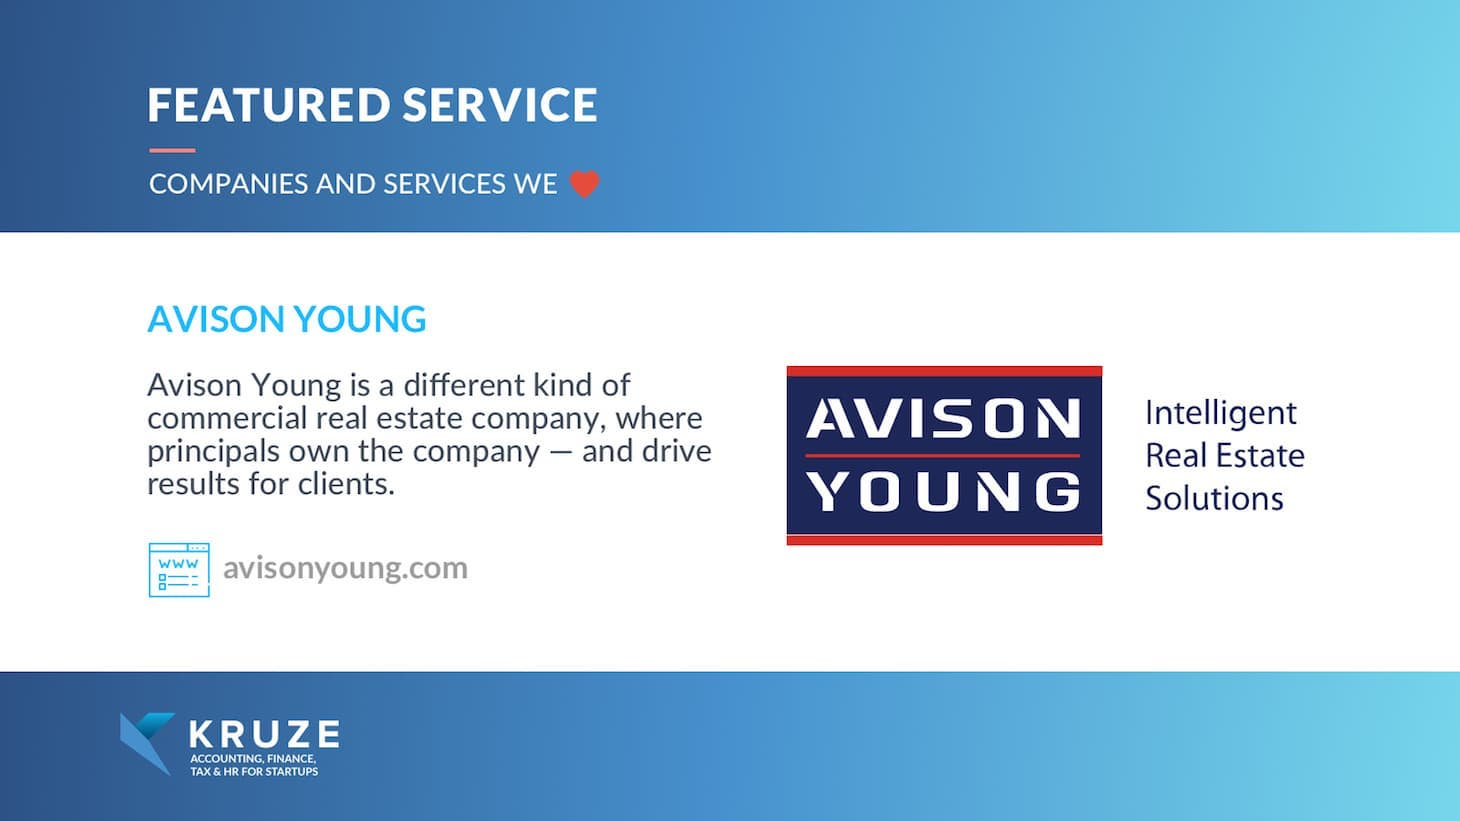 Featured Service - Avison Young